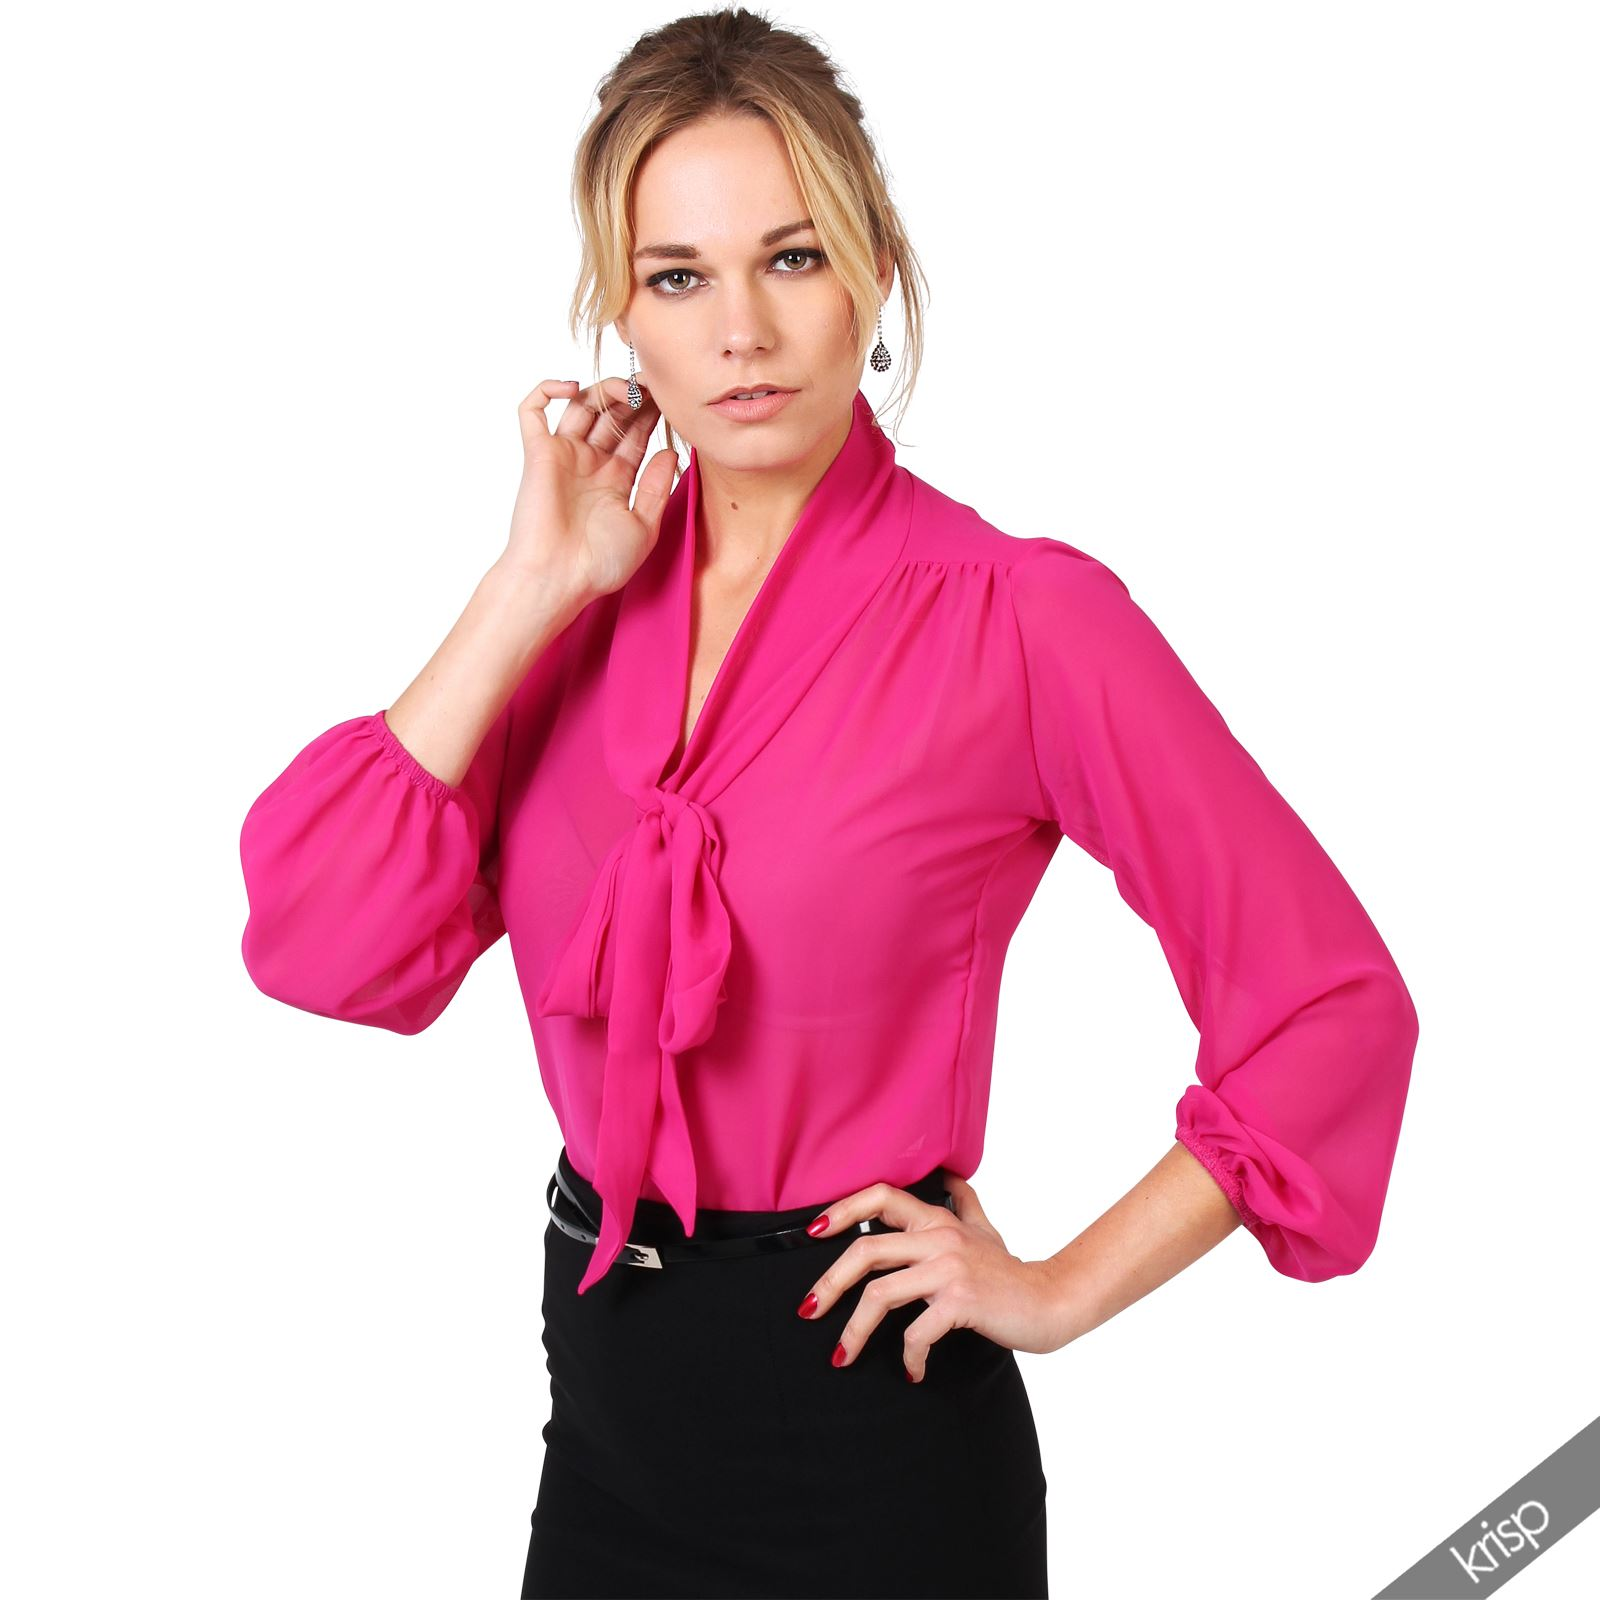 Womens-See-Through-Chiffon-Blouse-Bow-Tie-Top-Long-Sleeve-Smart-Shirt